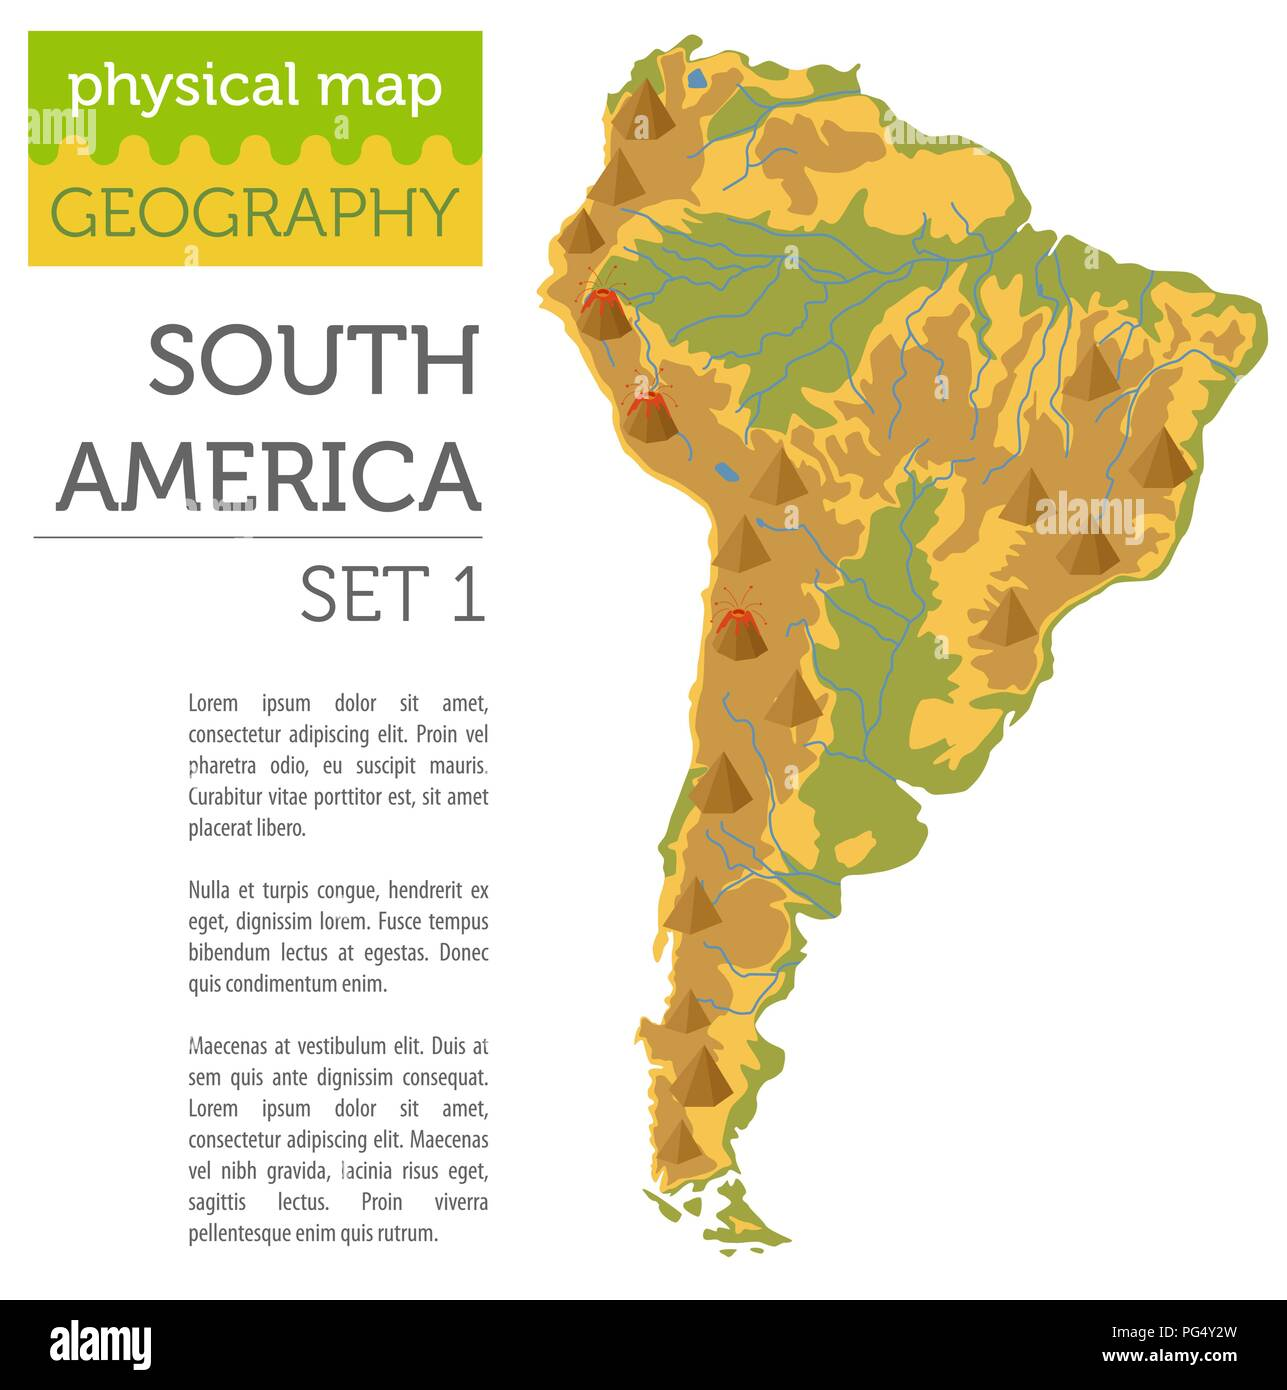 South America physical map elements. Build your own ...